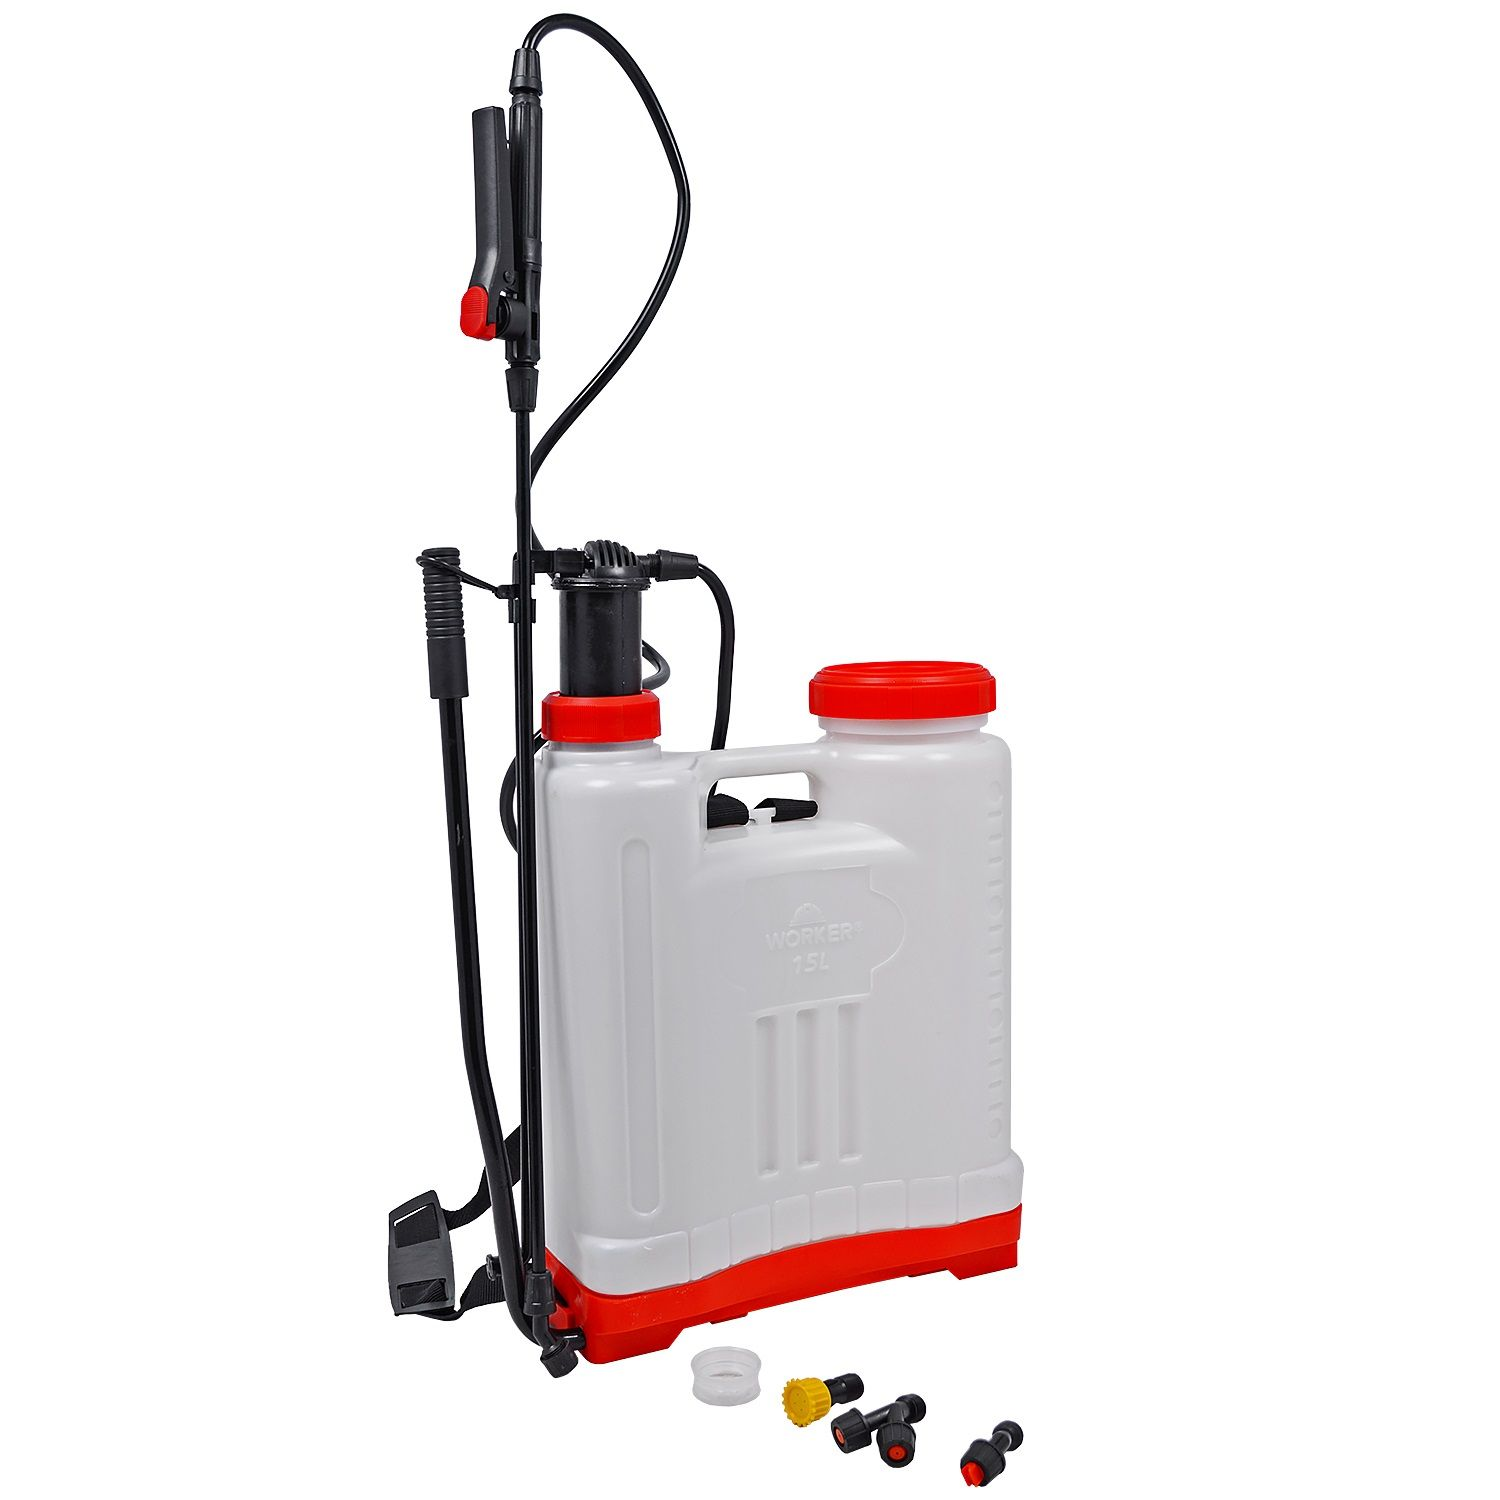 Pulverizador Costal Manual 15 Litros Worker